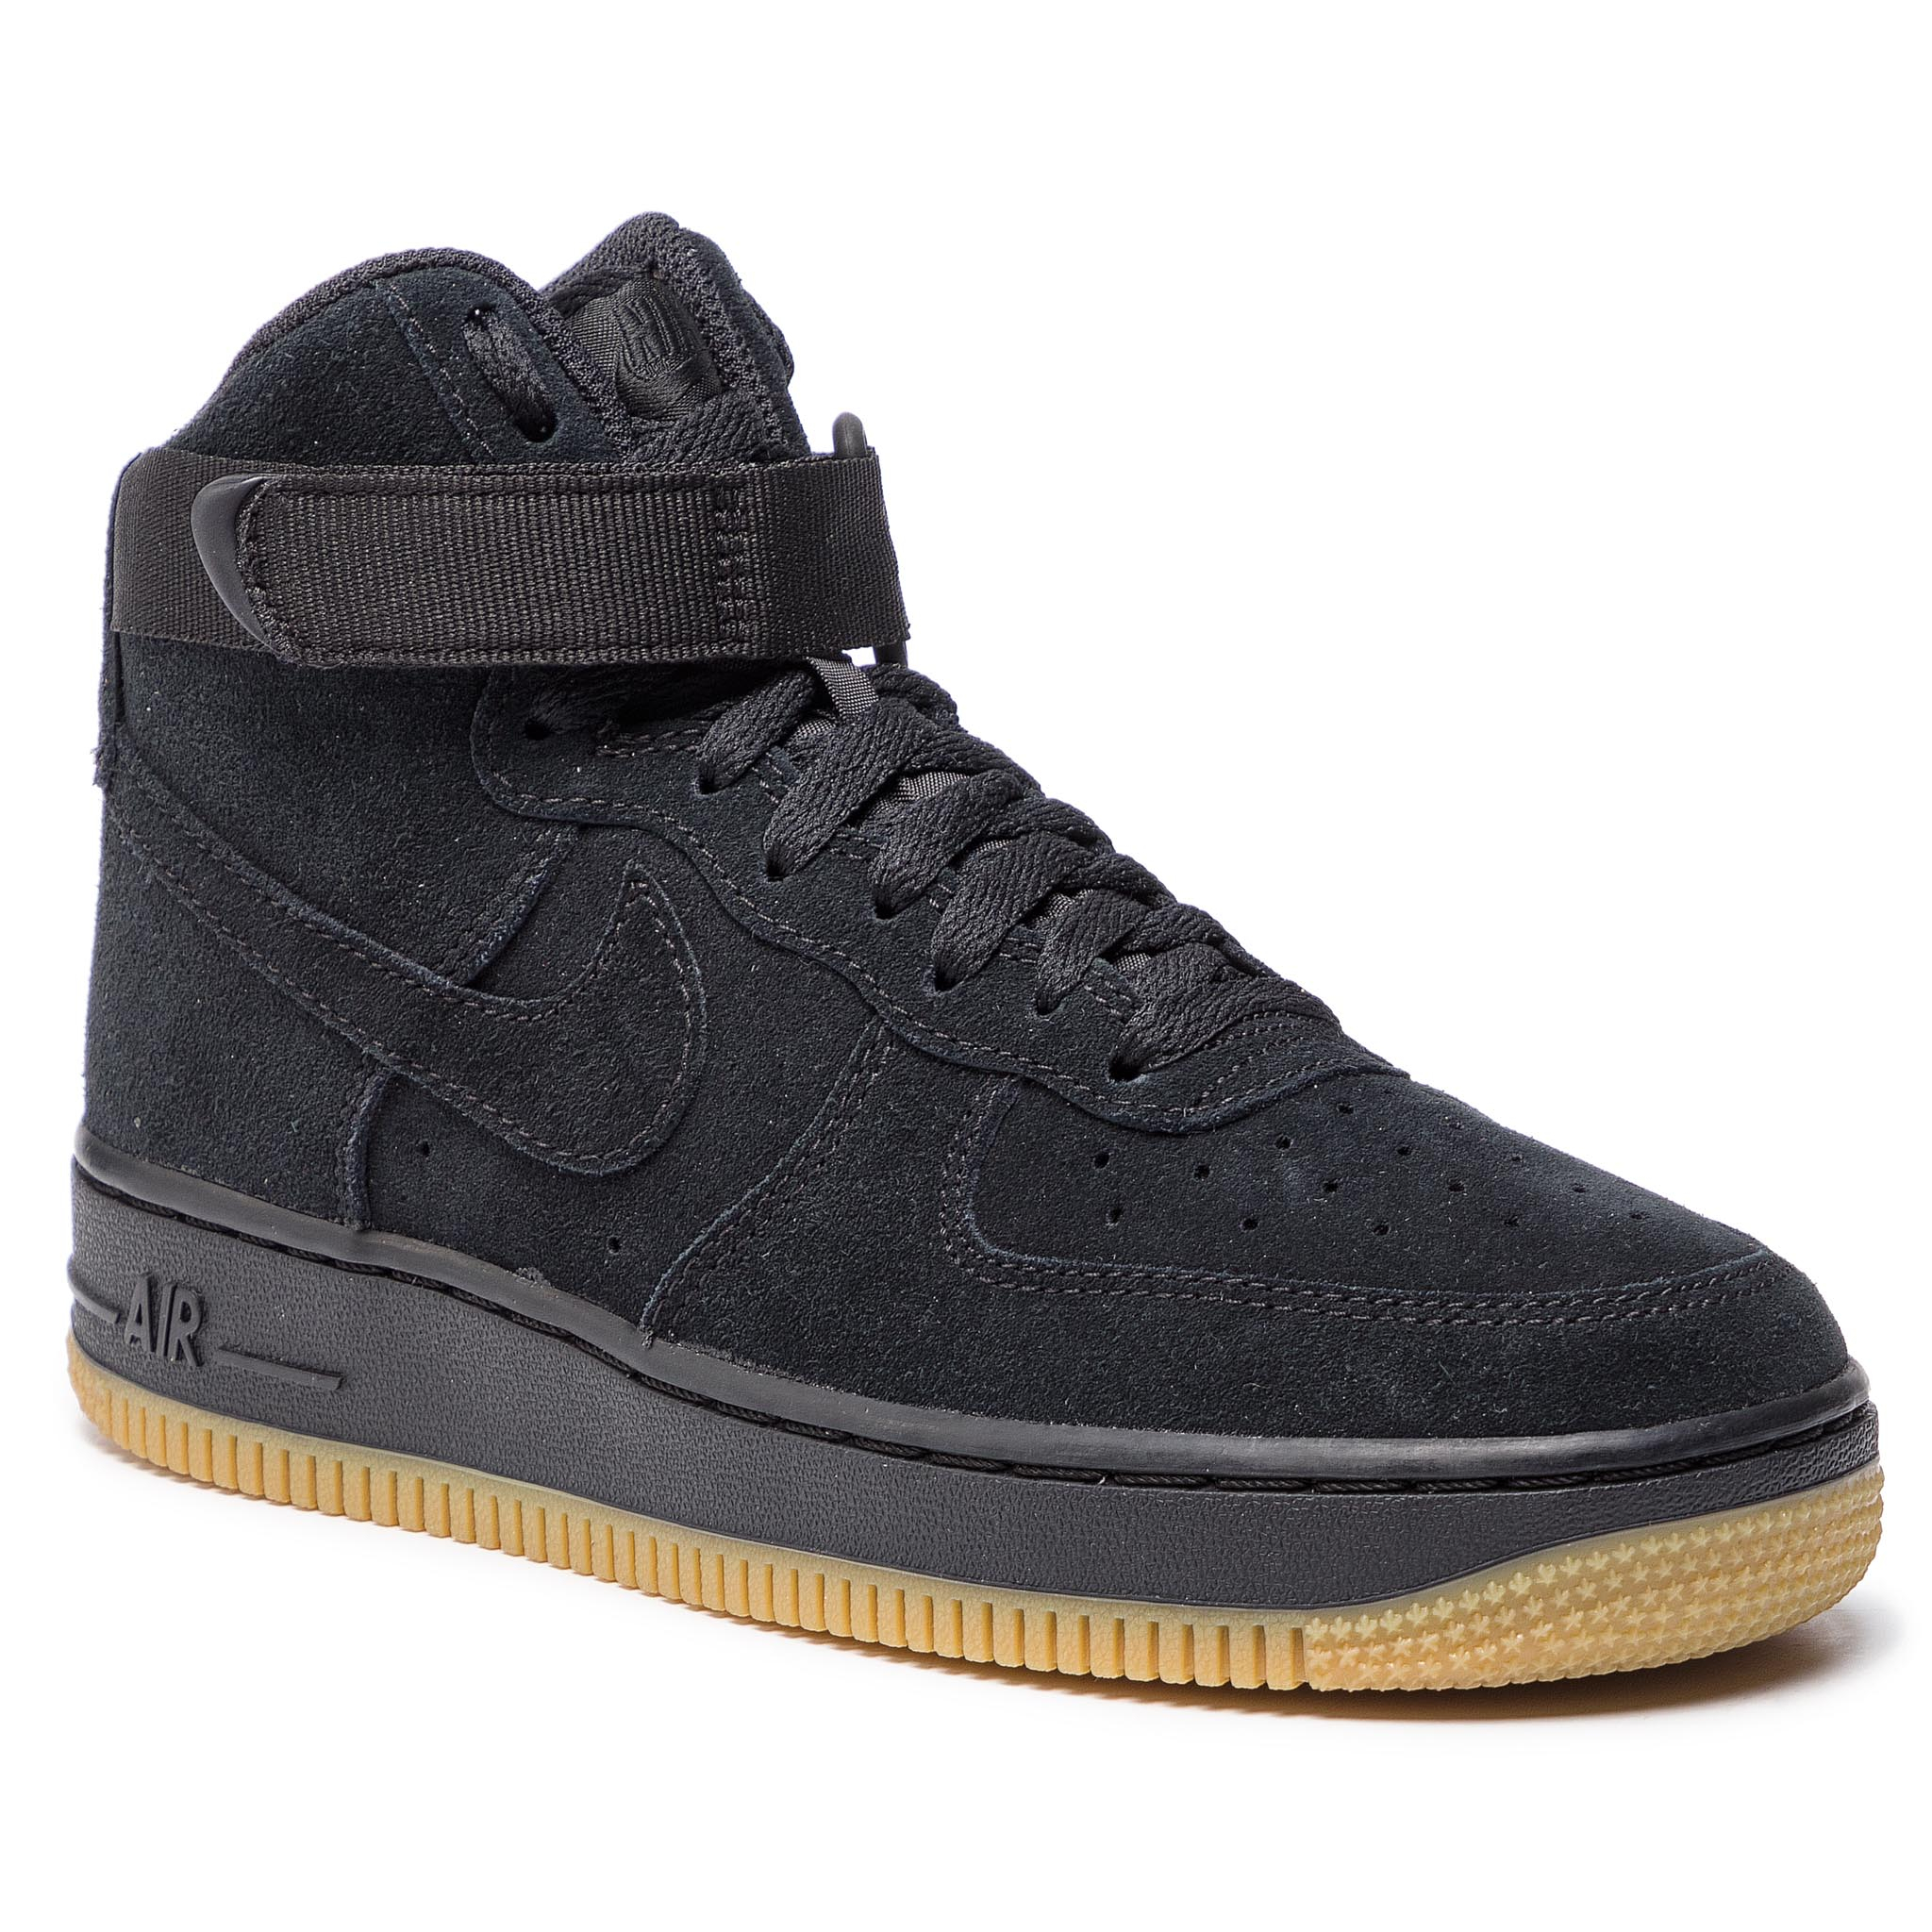 eda39f75d32b9 Boty NIKE - Air Force 1 High Lv8 (GS) 807617 002 Black/Black